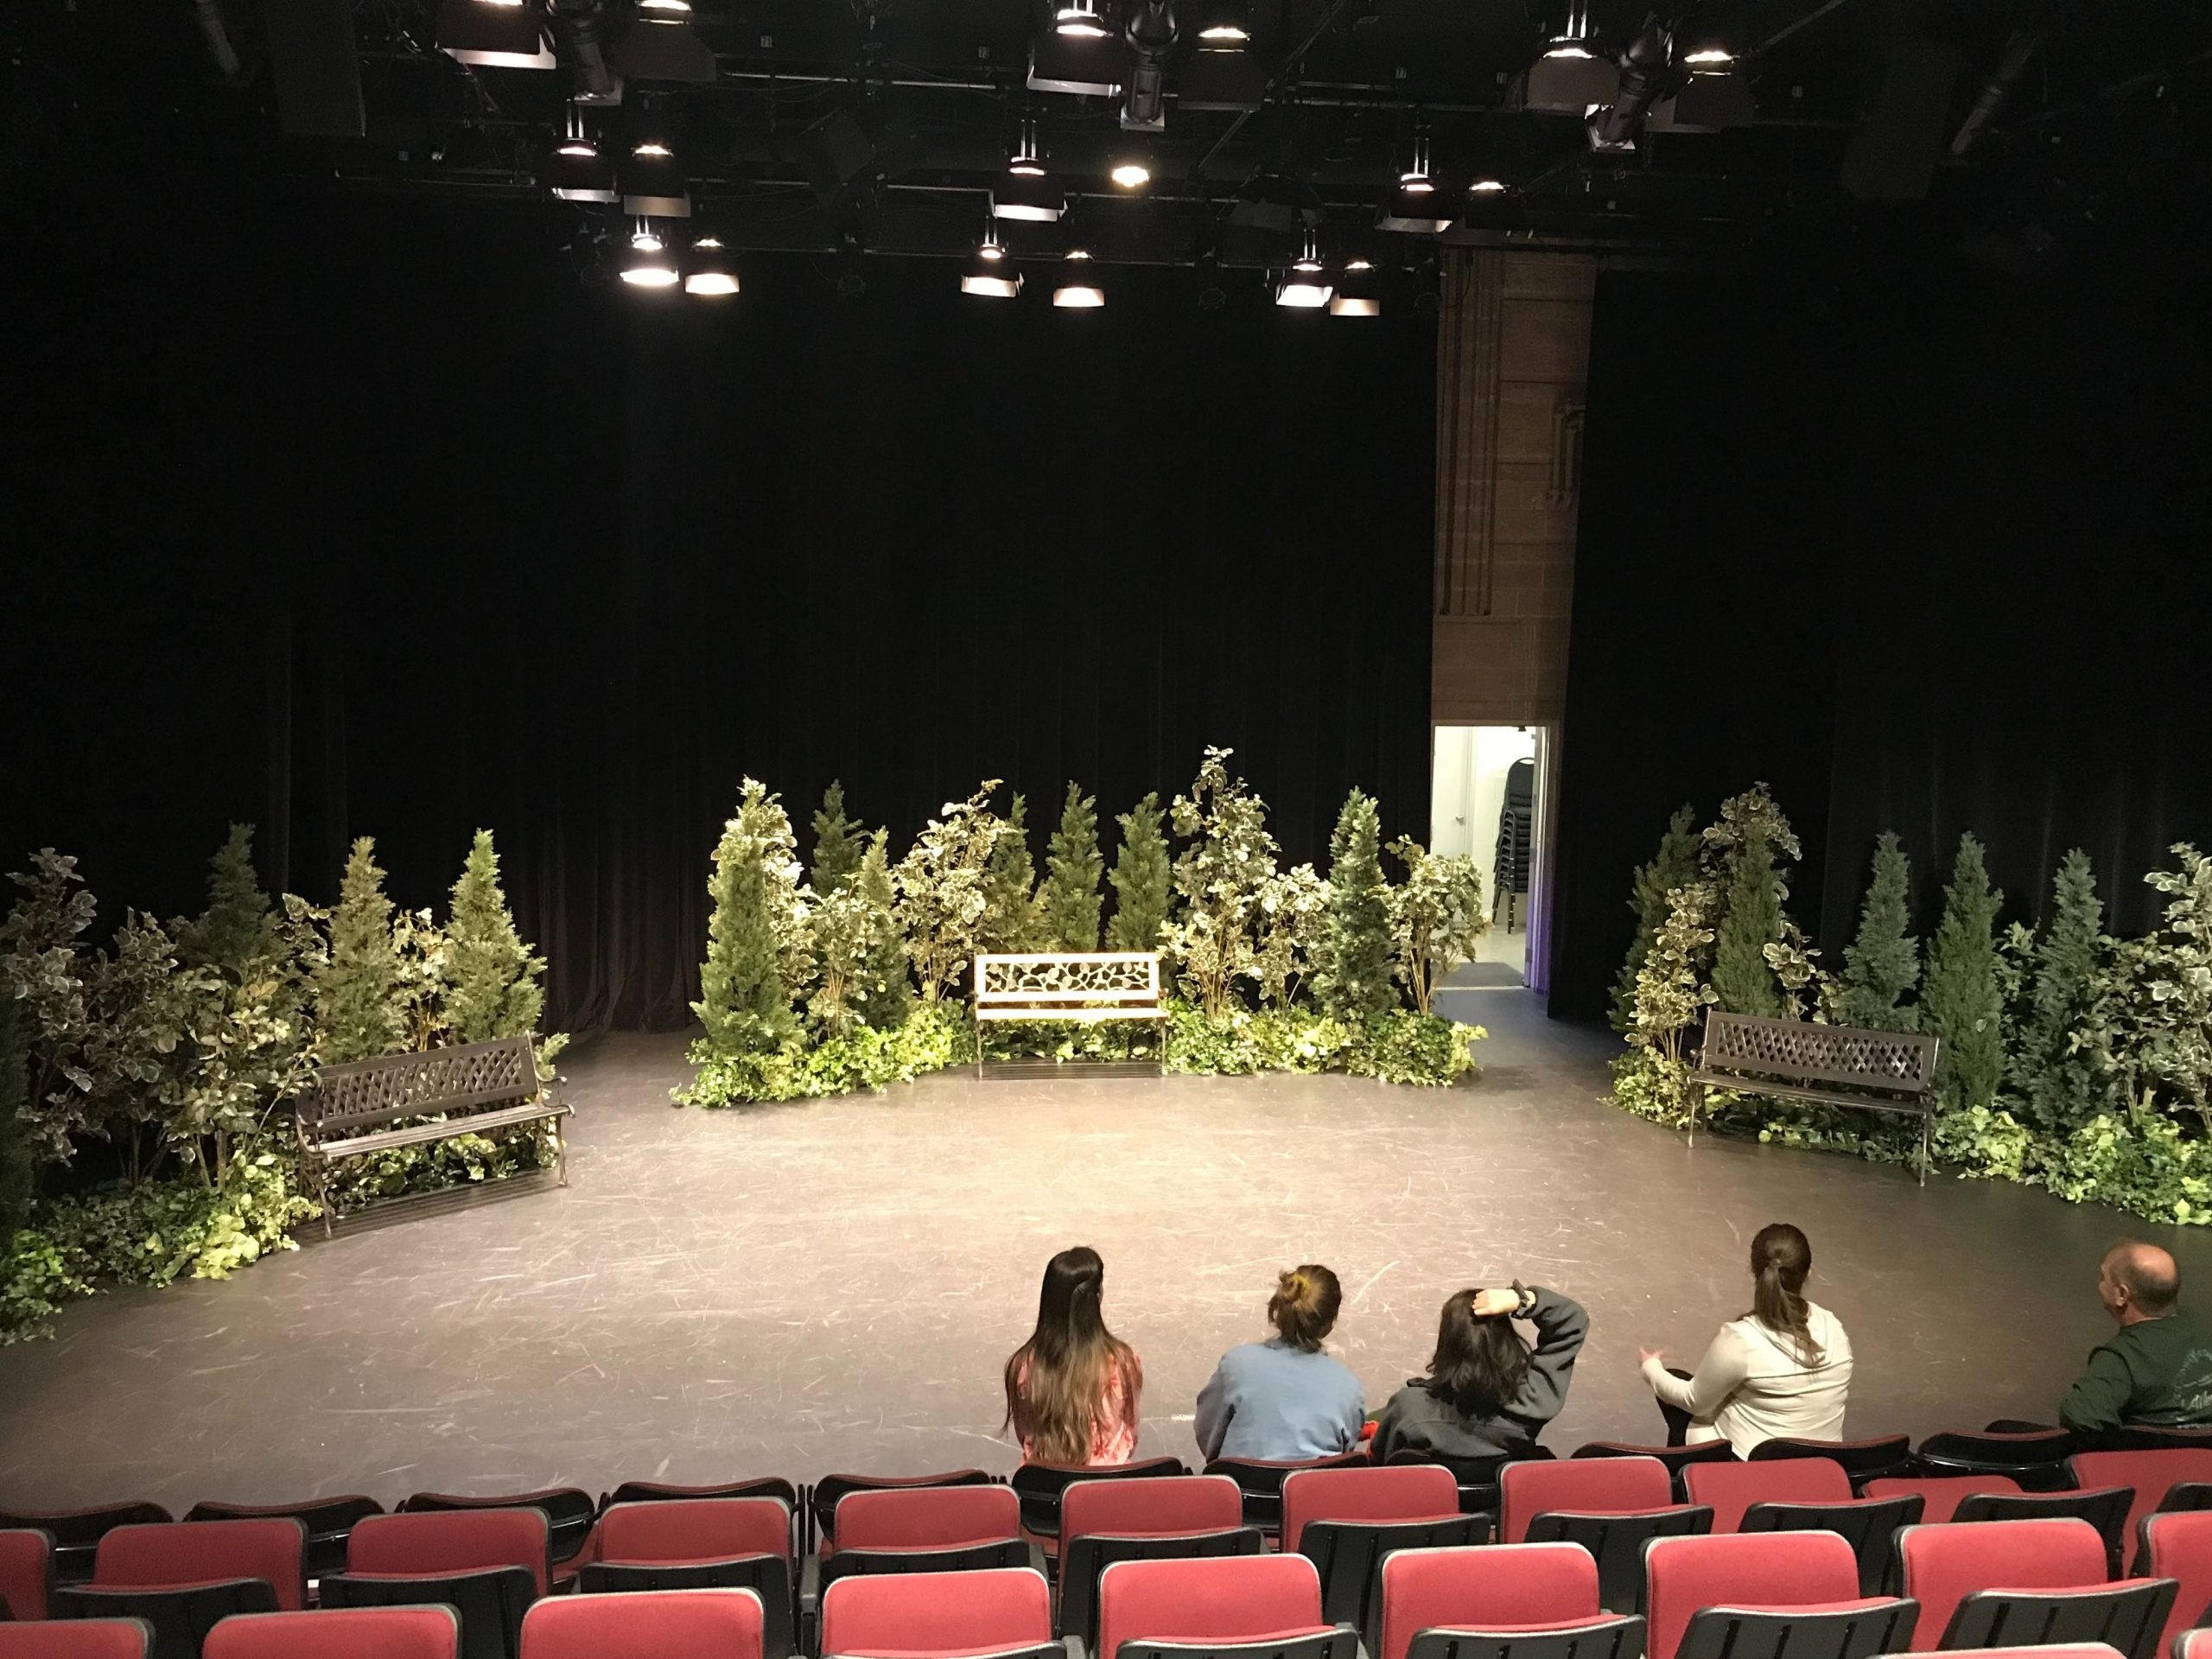 West coast greenery and cedar topiary hedges with park benches for a theatre production stage backdrop